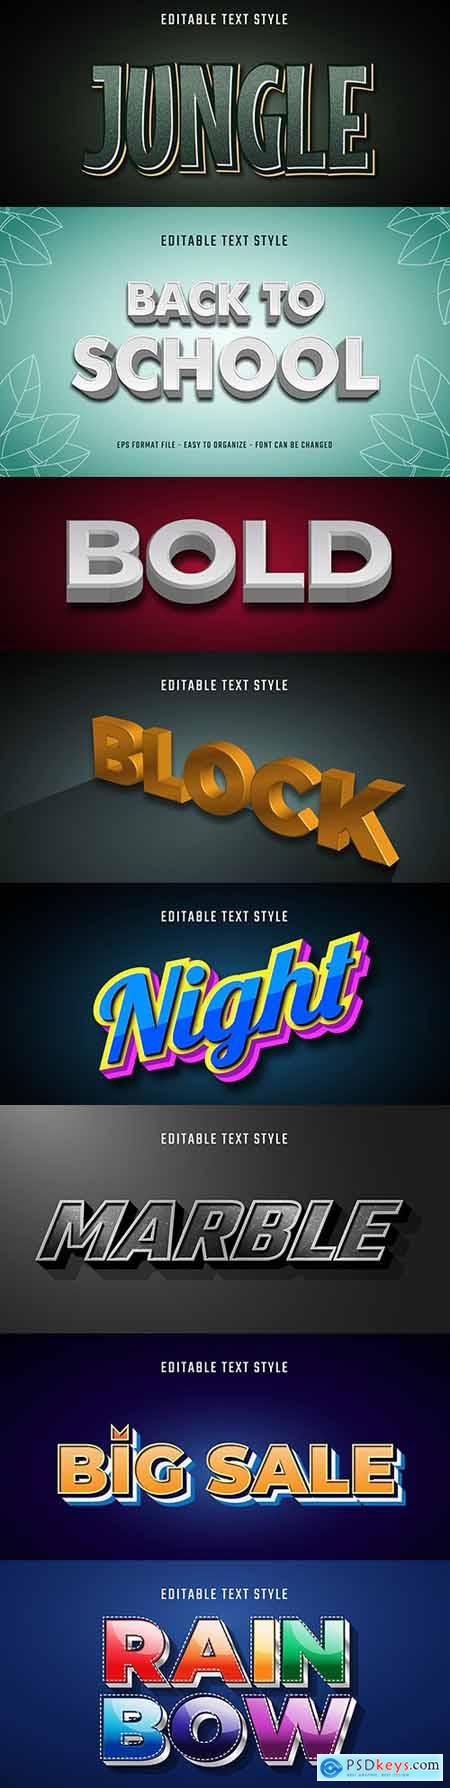 Editable font effect text collection illustration design 154